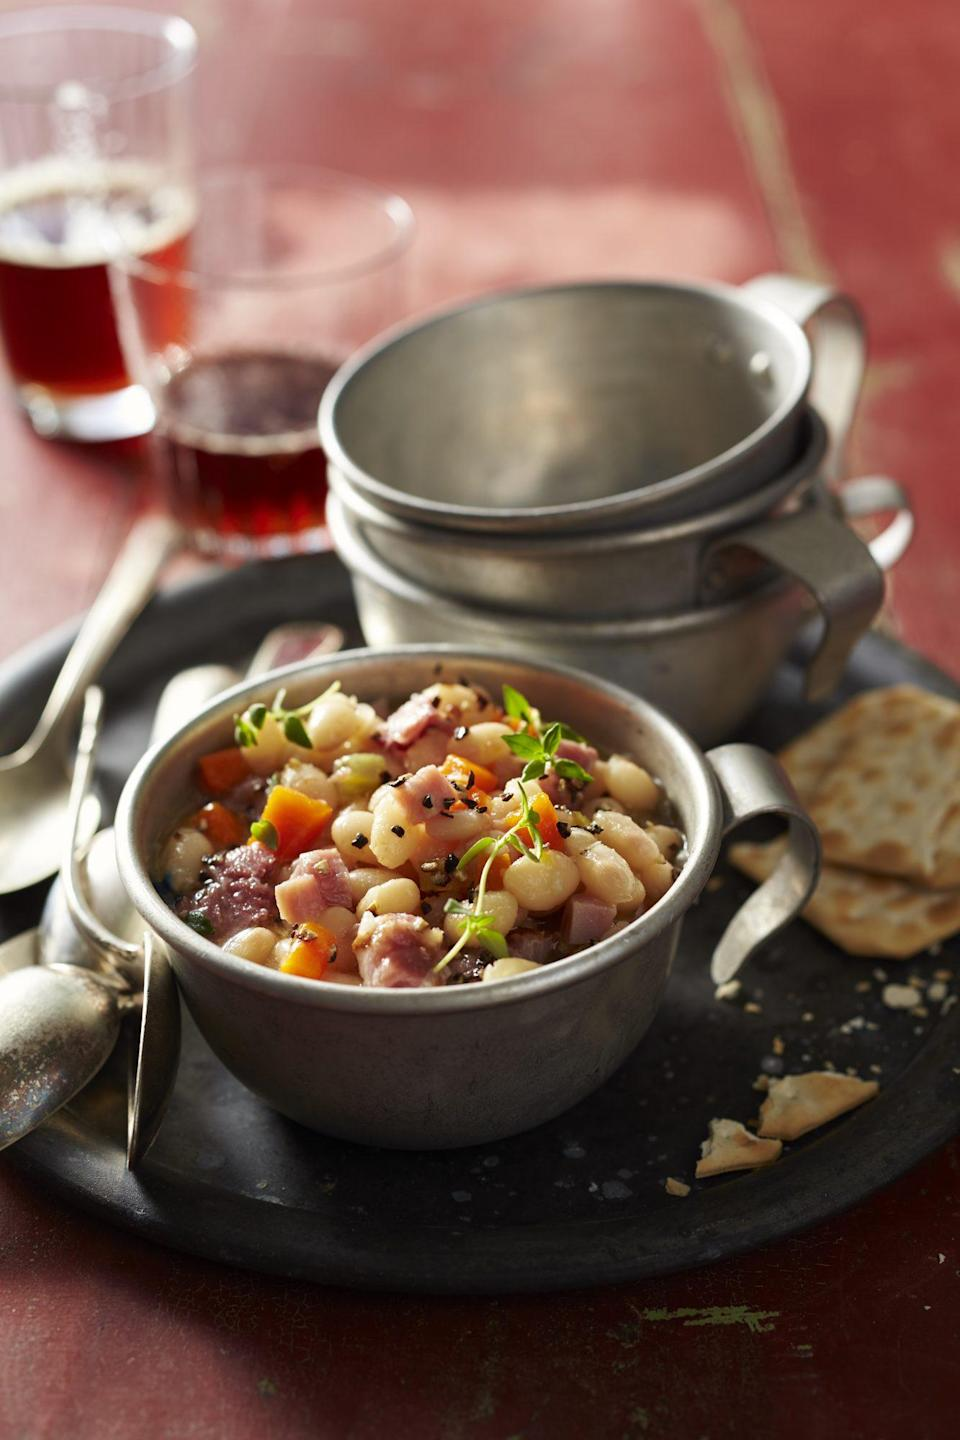 """<p><strong>Recipe: <a href=""""https://www.southernliving.com/recipes/navy-bean-and-ham-soup-recipe"""" rel=""""nofollow noopener"""" target=""""_blank"""" data-ylk=""""slk:Navy Bean and Ham Soup"""" class=""""link rapid-noclick-resp"""">Navy Bean and Ham Soup</a></strong></p> <p>You'll know this slow cooker soup is done cooking when the beans are tender. Before serving, we like garnishing each bowl with fresh thyme and serving with crusty bread or crackers. </p>"""